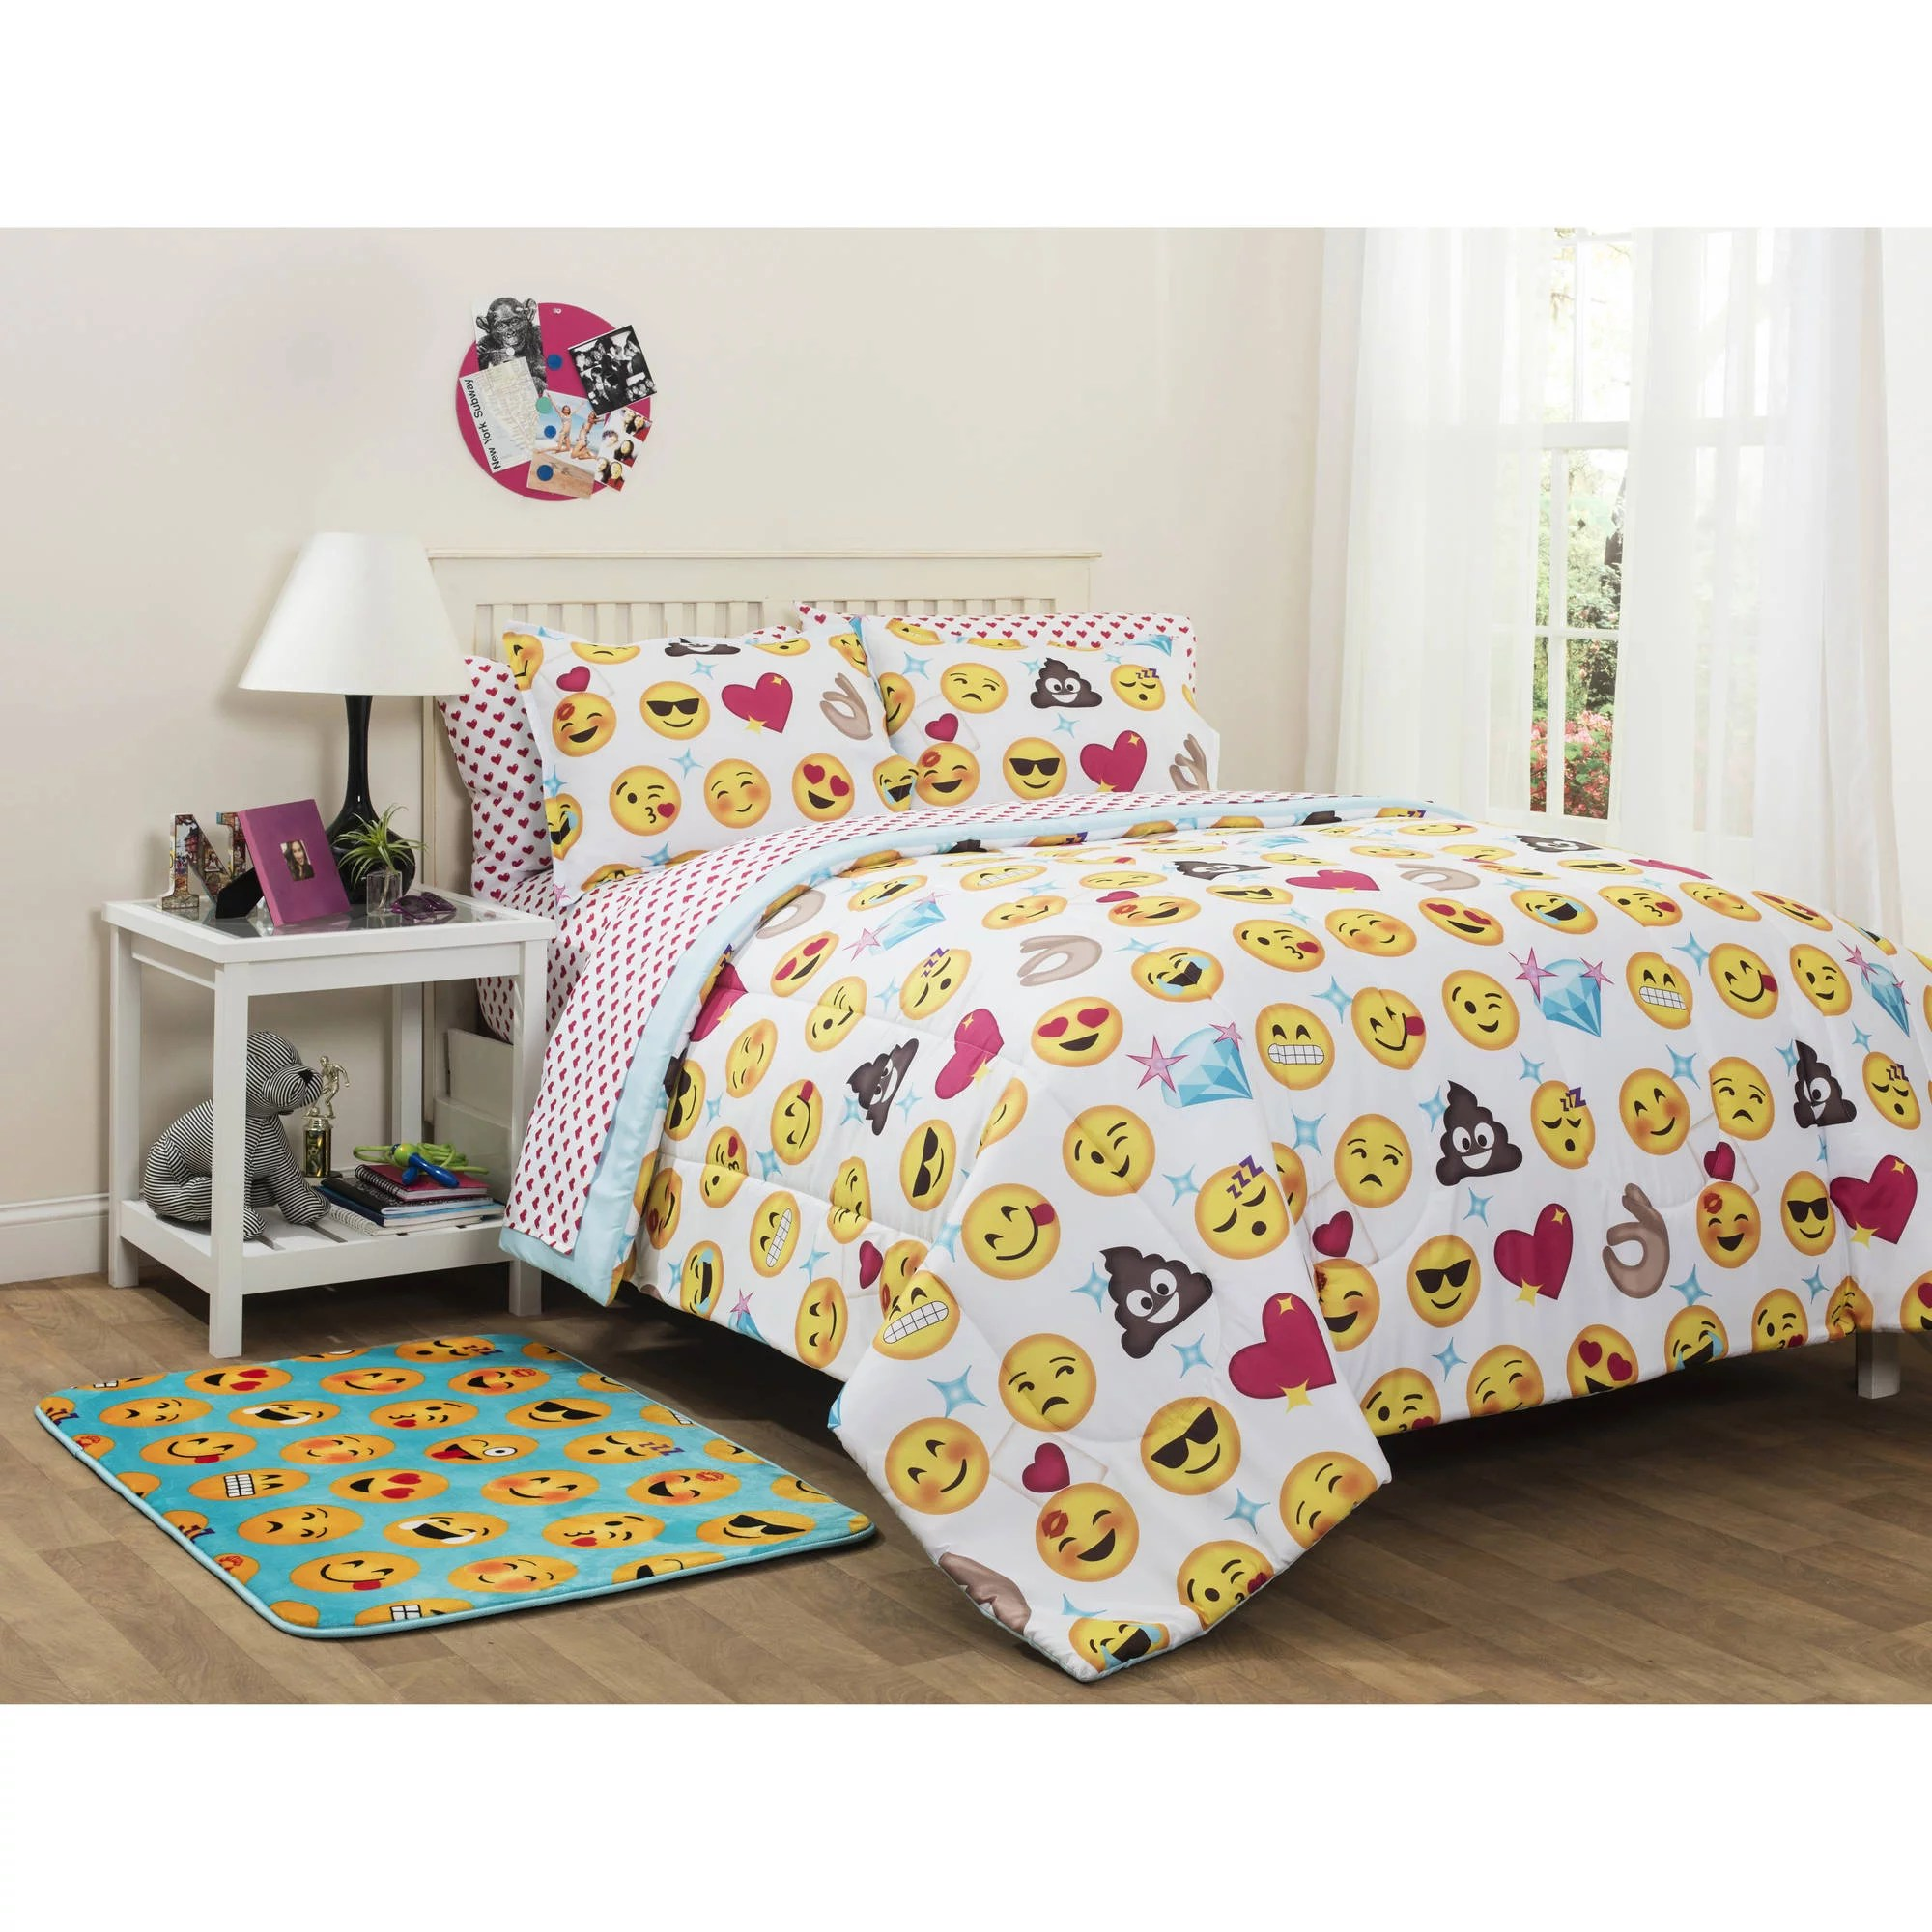 Where To Buy Nice Duvet Covers Emoji Pals Bed In A Bag Bedding Set